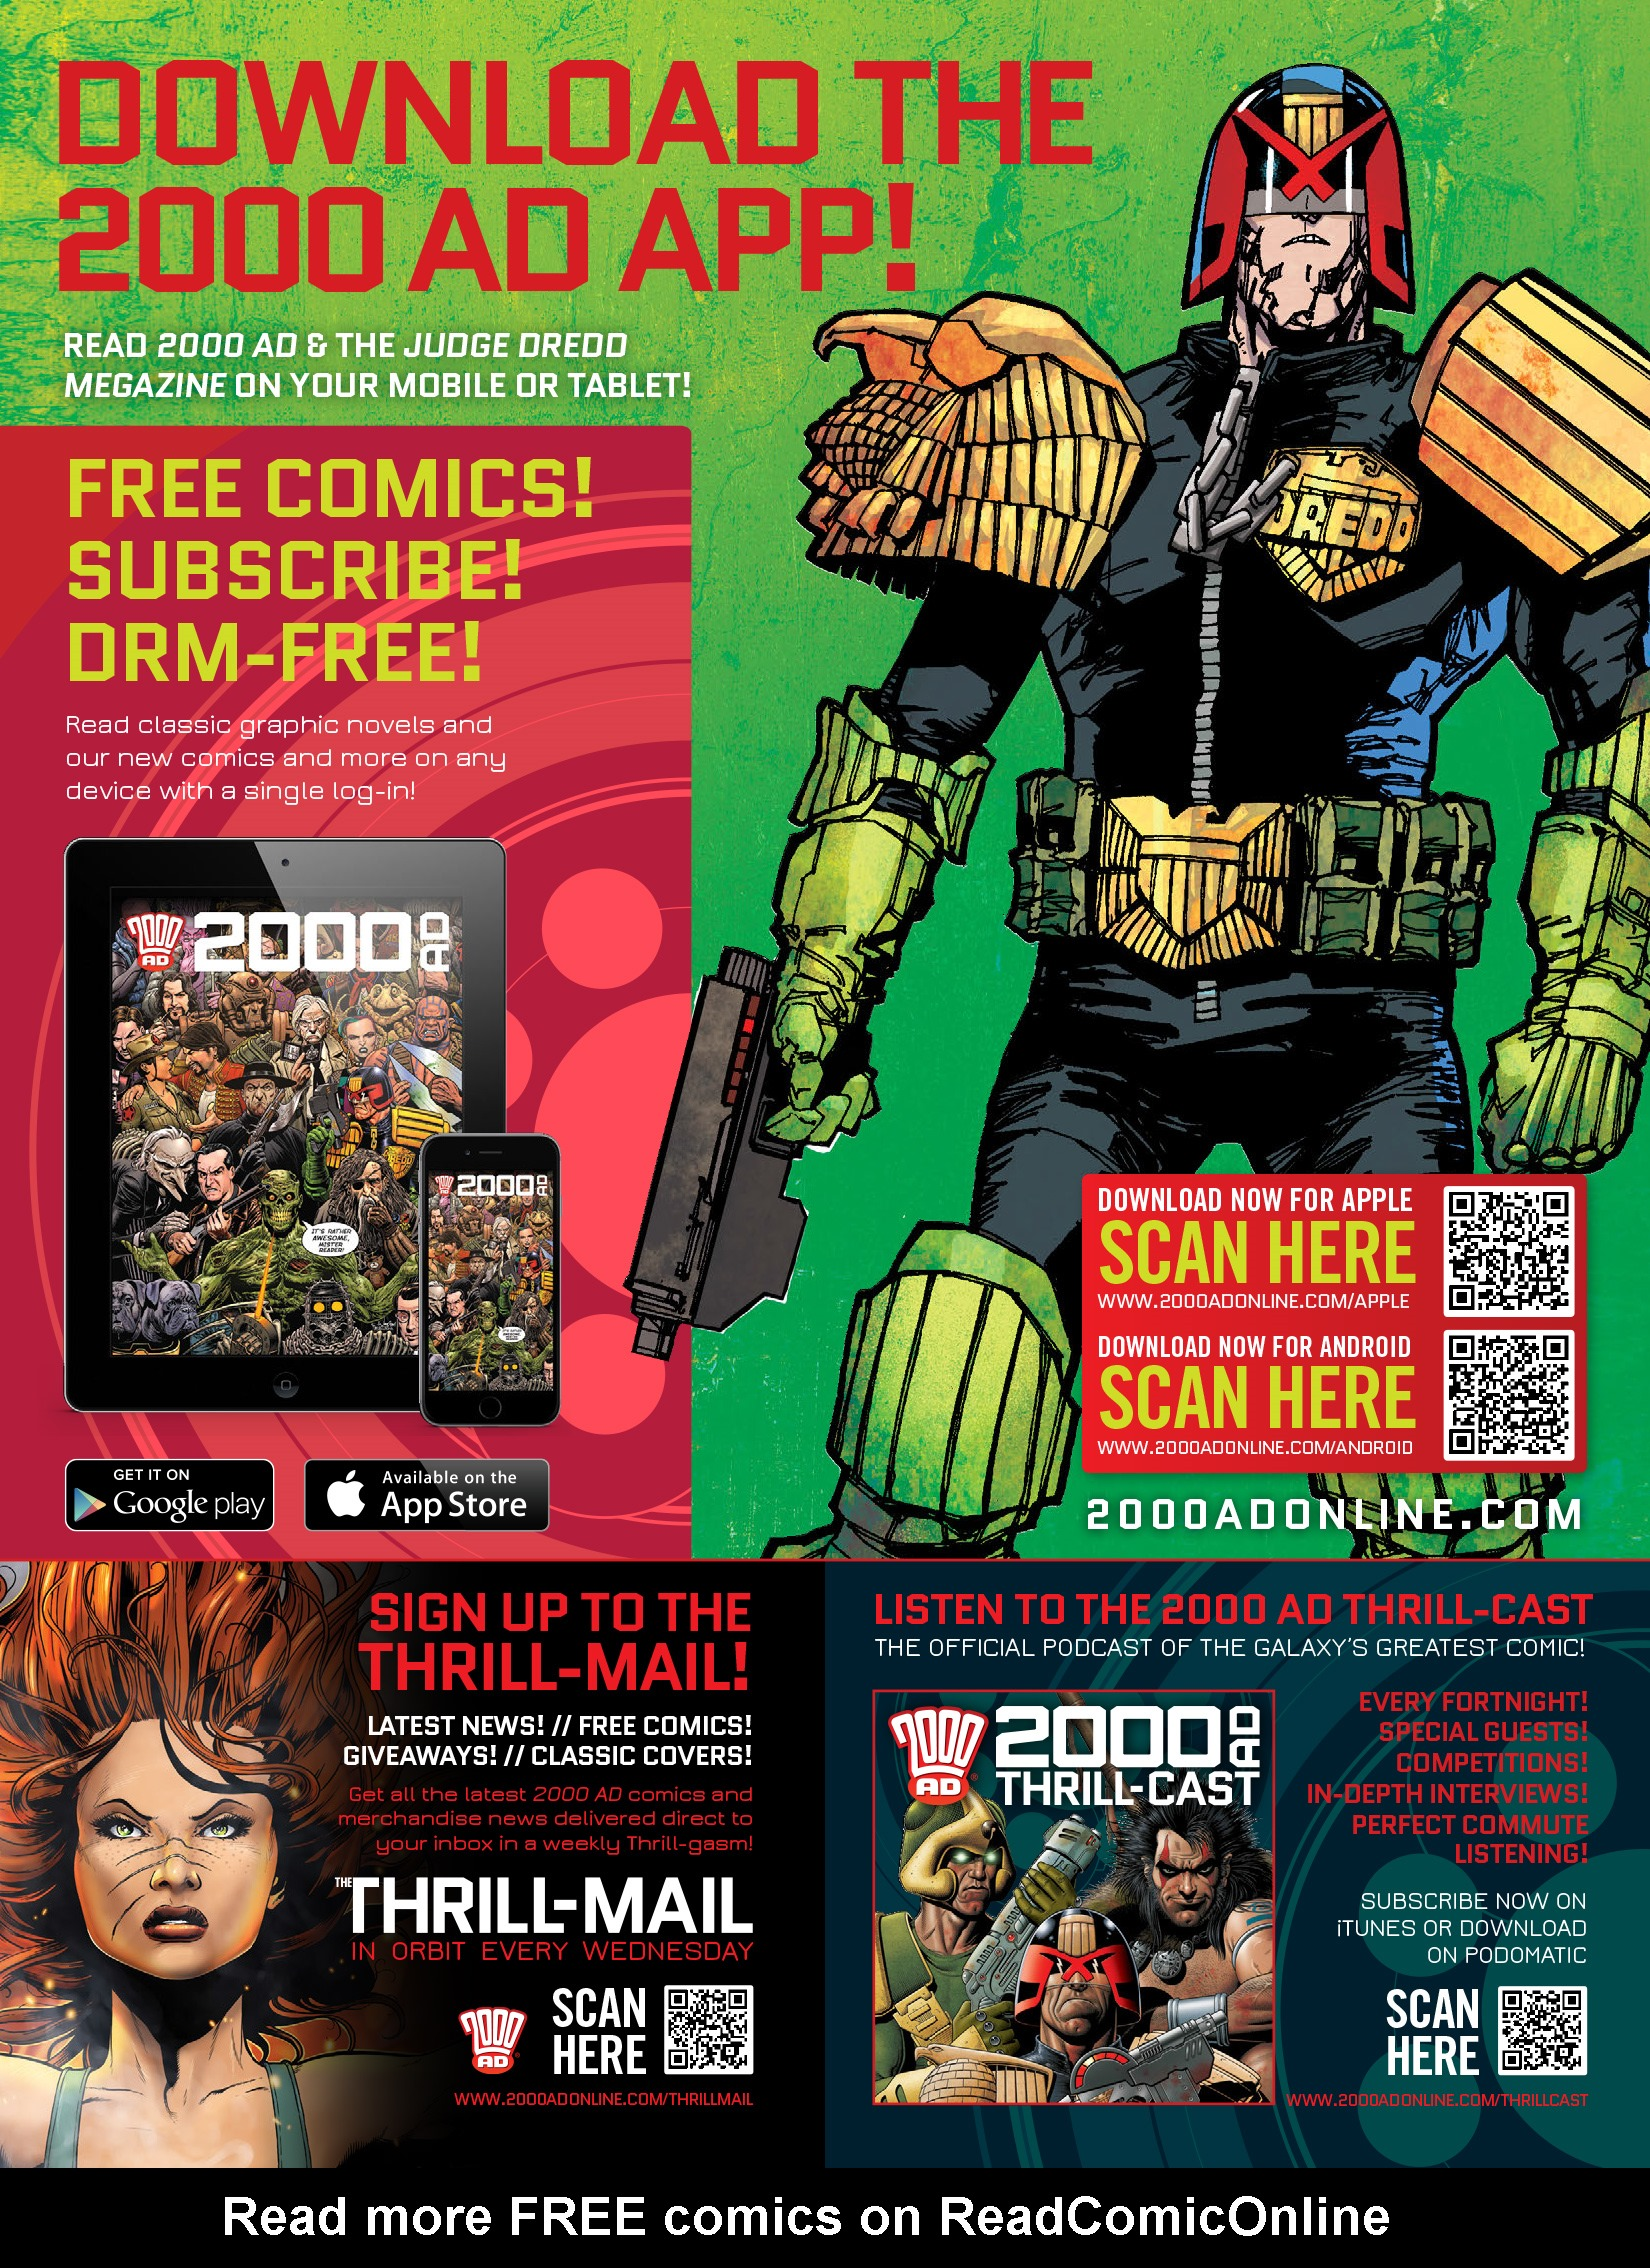 Read online 2000 AD comic -  Issue #1974 - 15